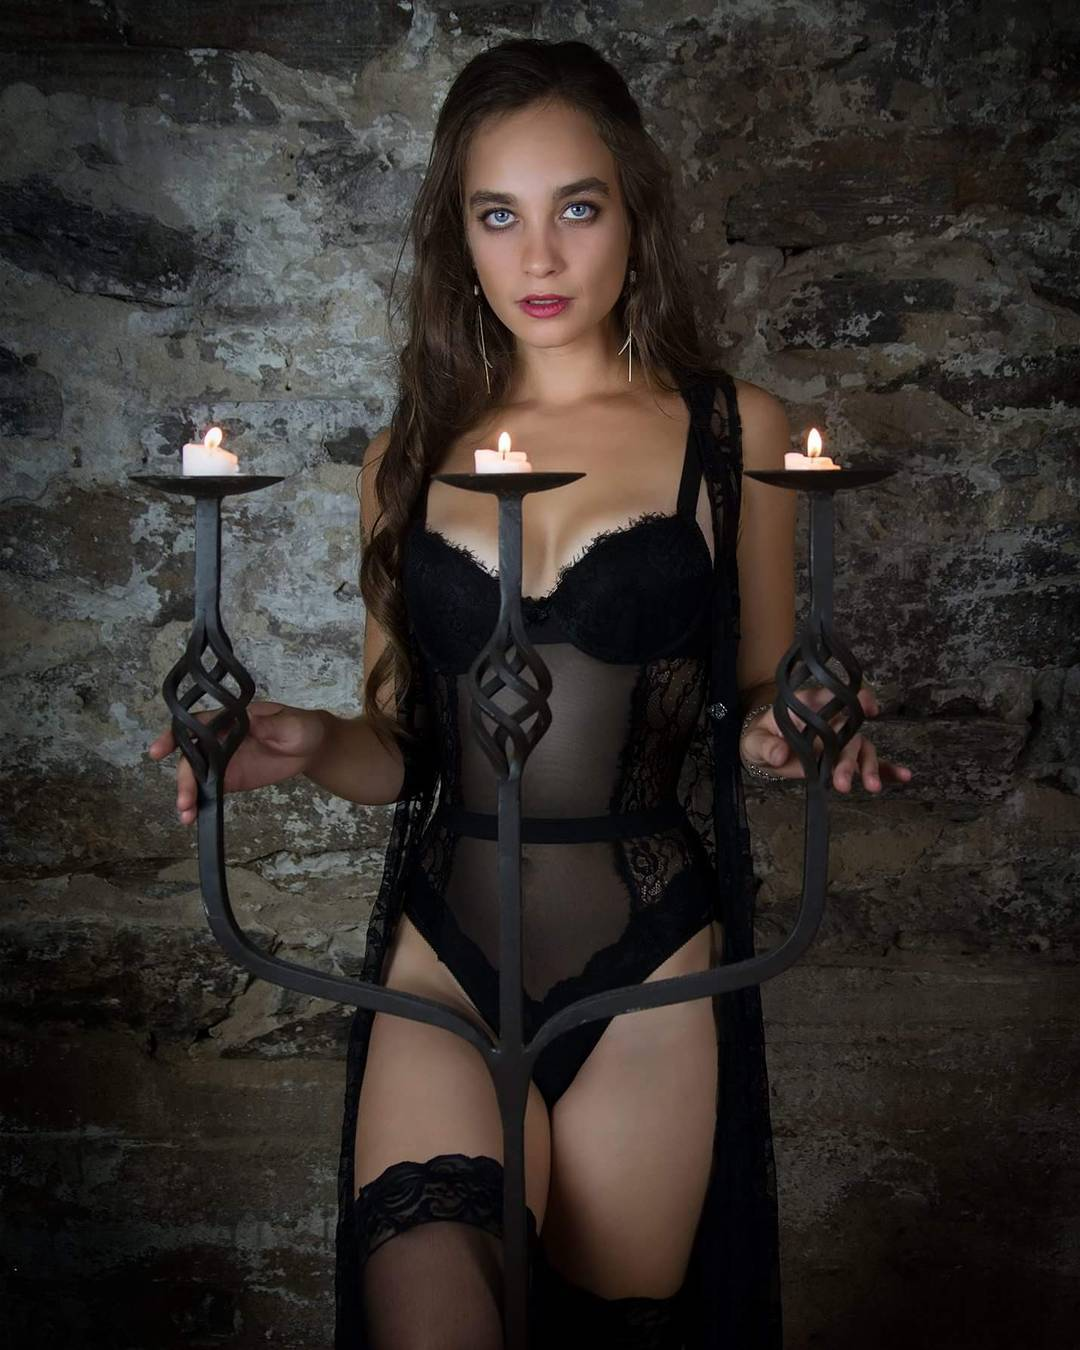 Model wearing black lacy lingerie from the curated collection from VaVaVooom in Asheville NC